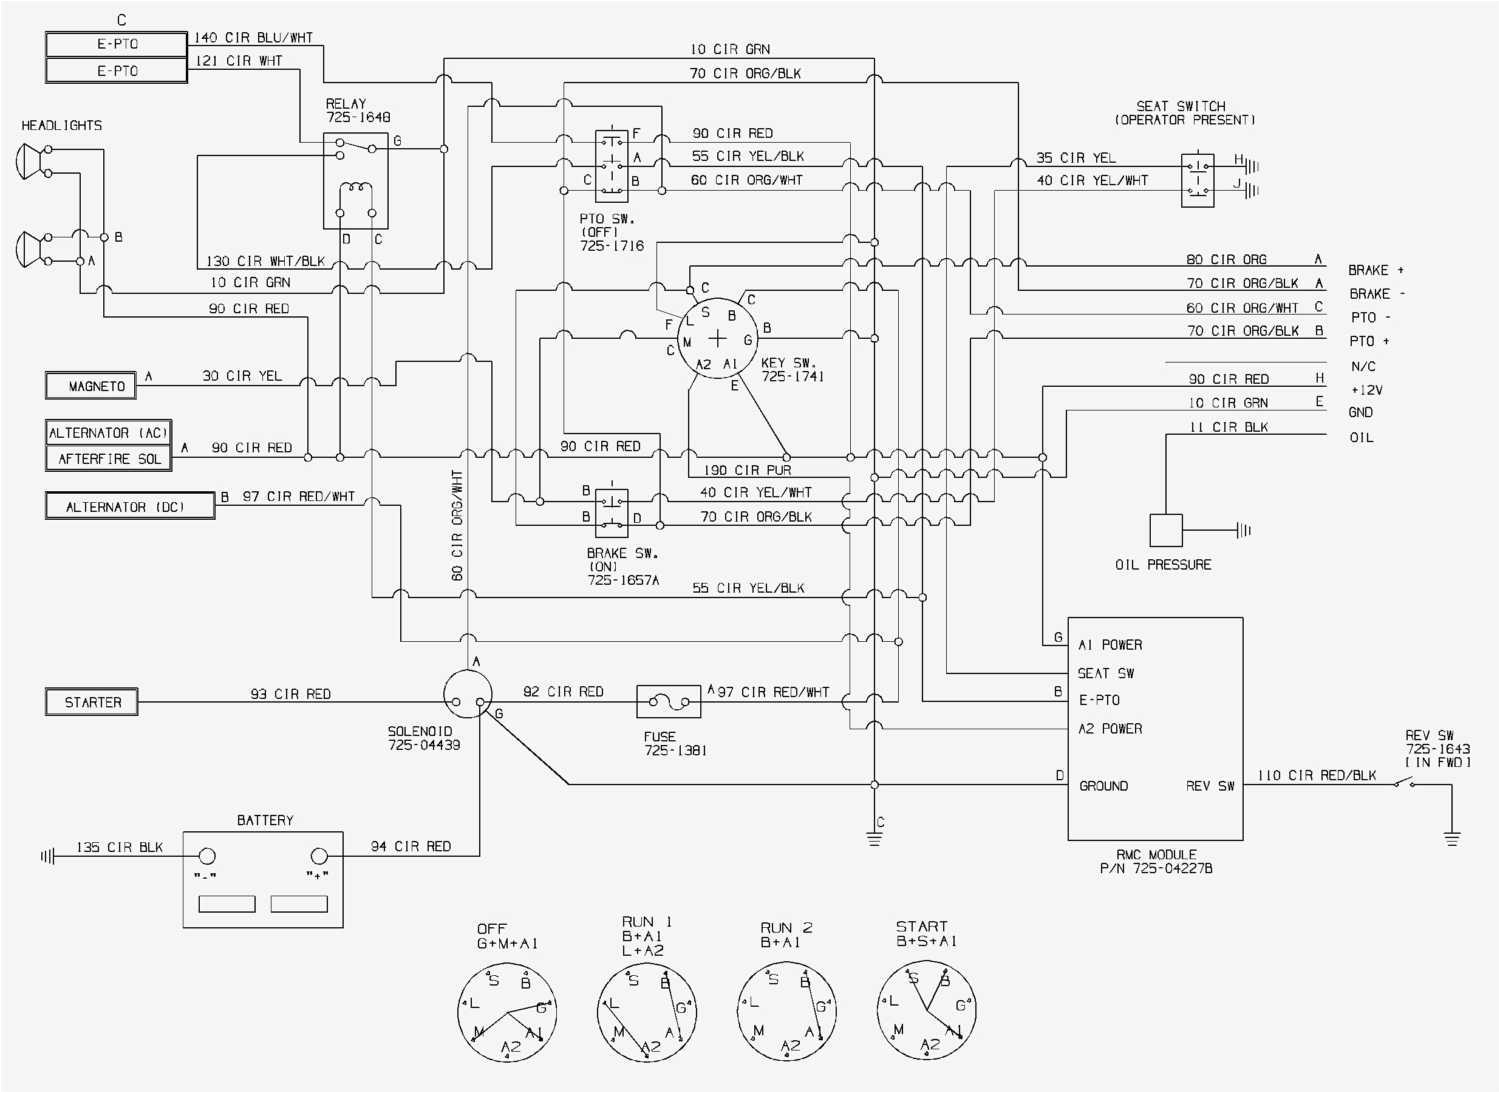 pbt gf30 wiring diagram to for cub cadet ltx 1045 the within hd beauteous 1170 for pbt gf30 jpg